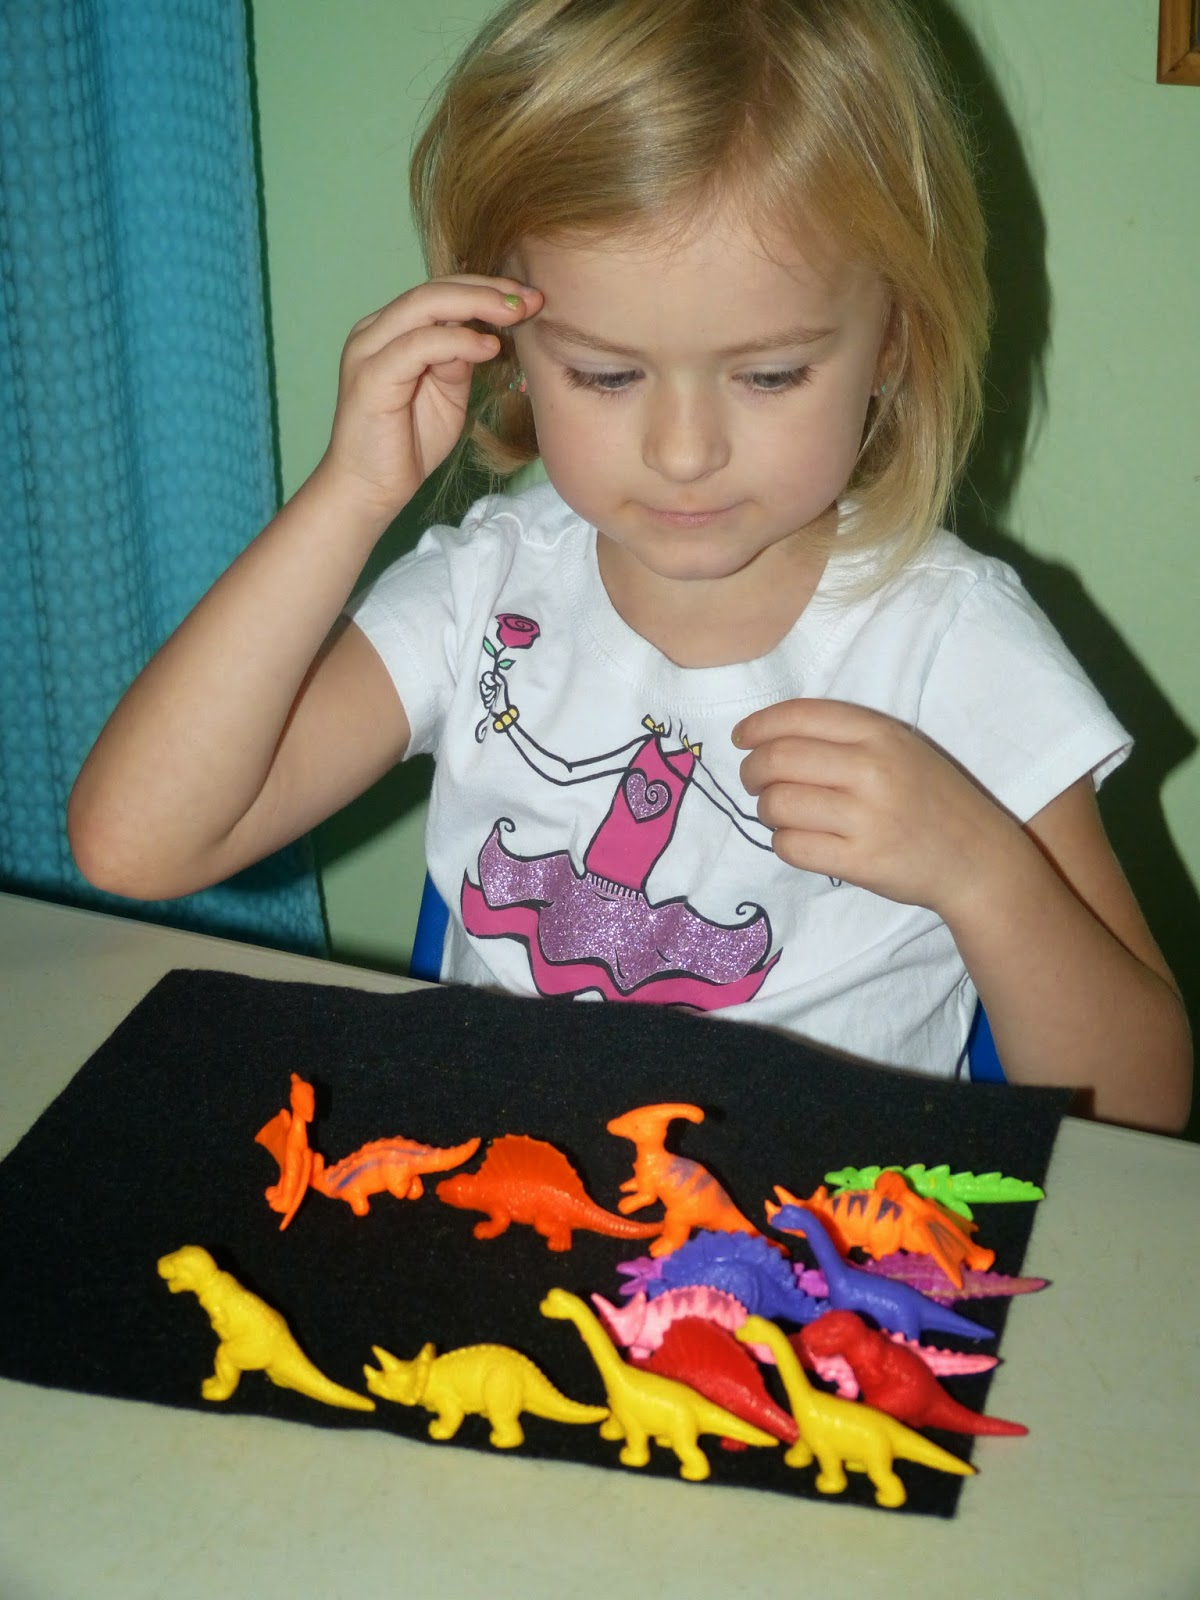 Dinosaurs and dots: activities for learning the letter Dd in preschool or kindergarten.